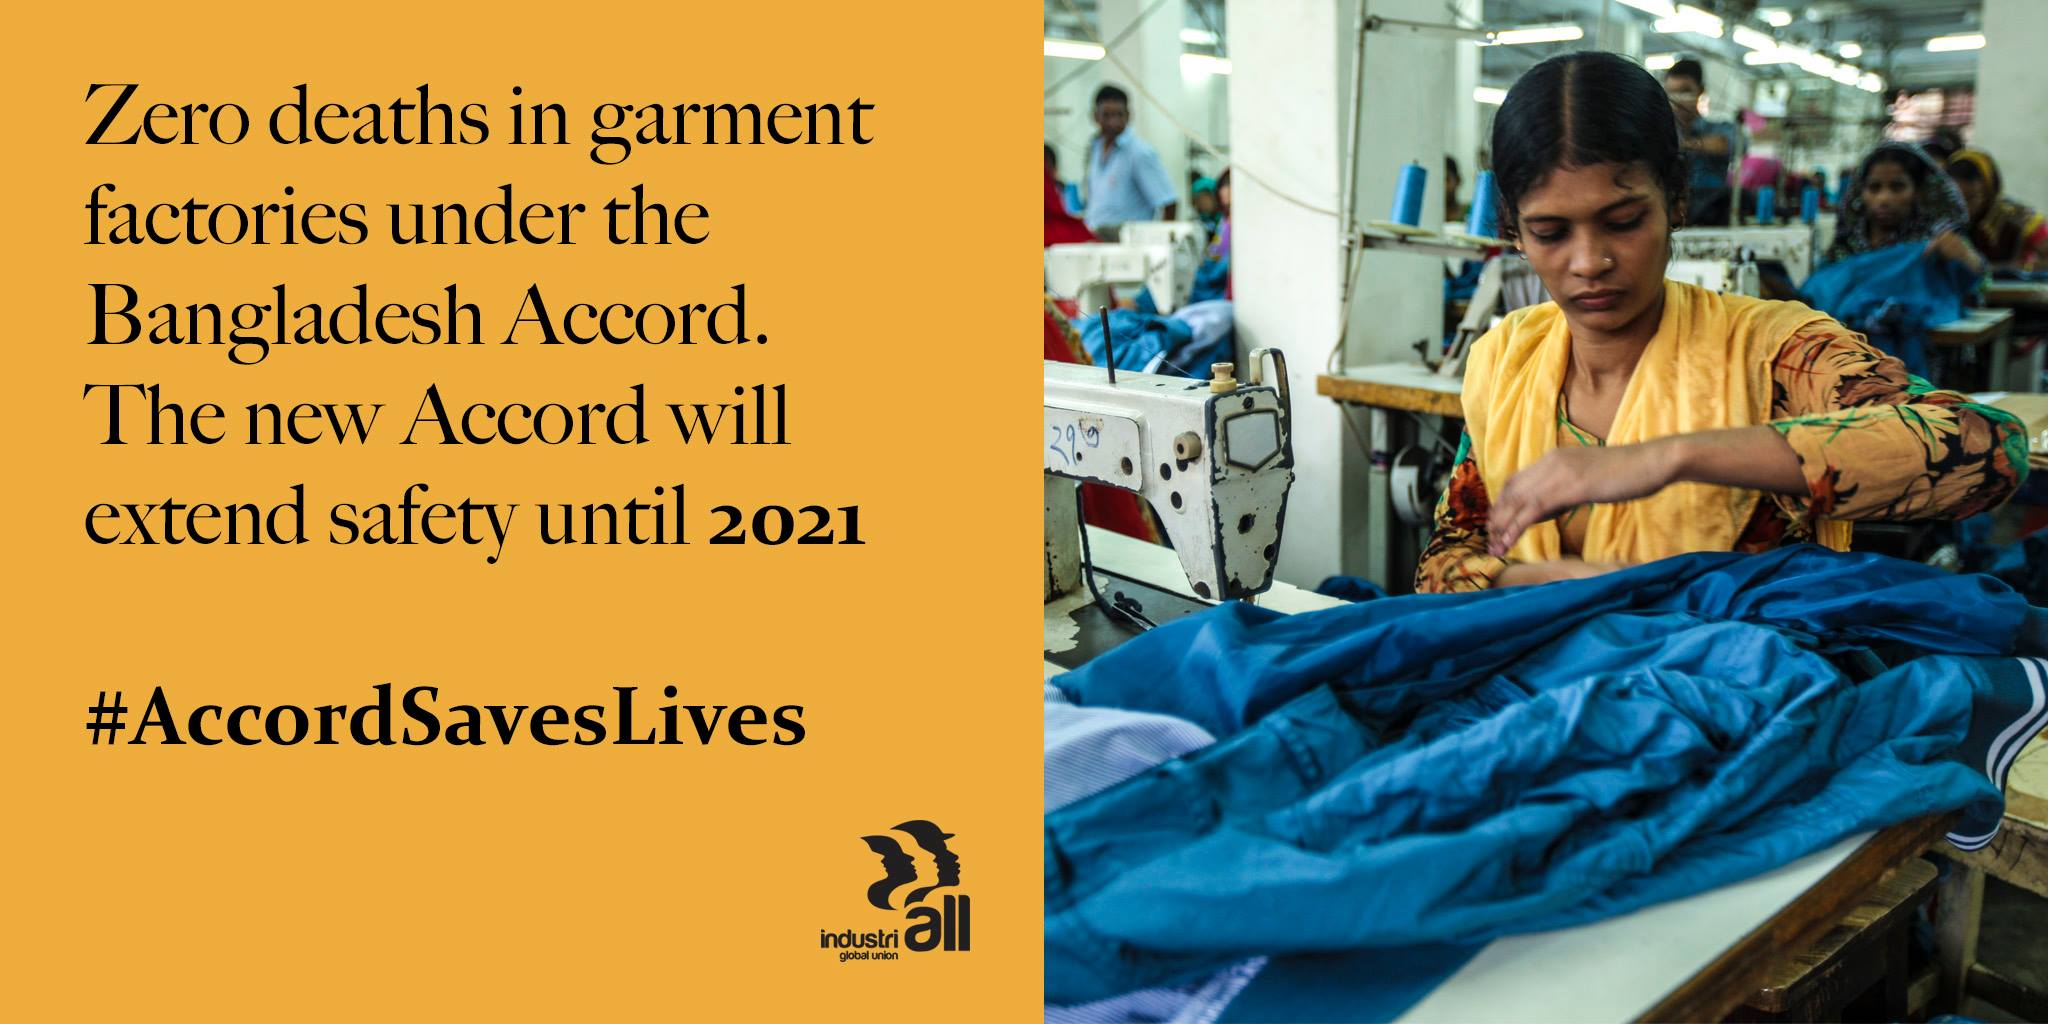 Zero deaths in garment factories under the Bangladesh Accord. The new Accord will extend safety until 2021.